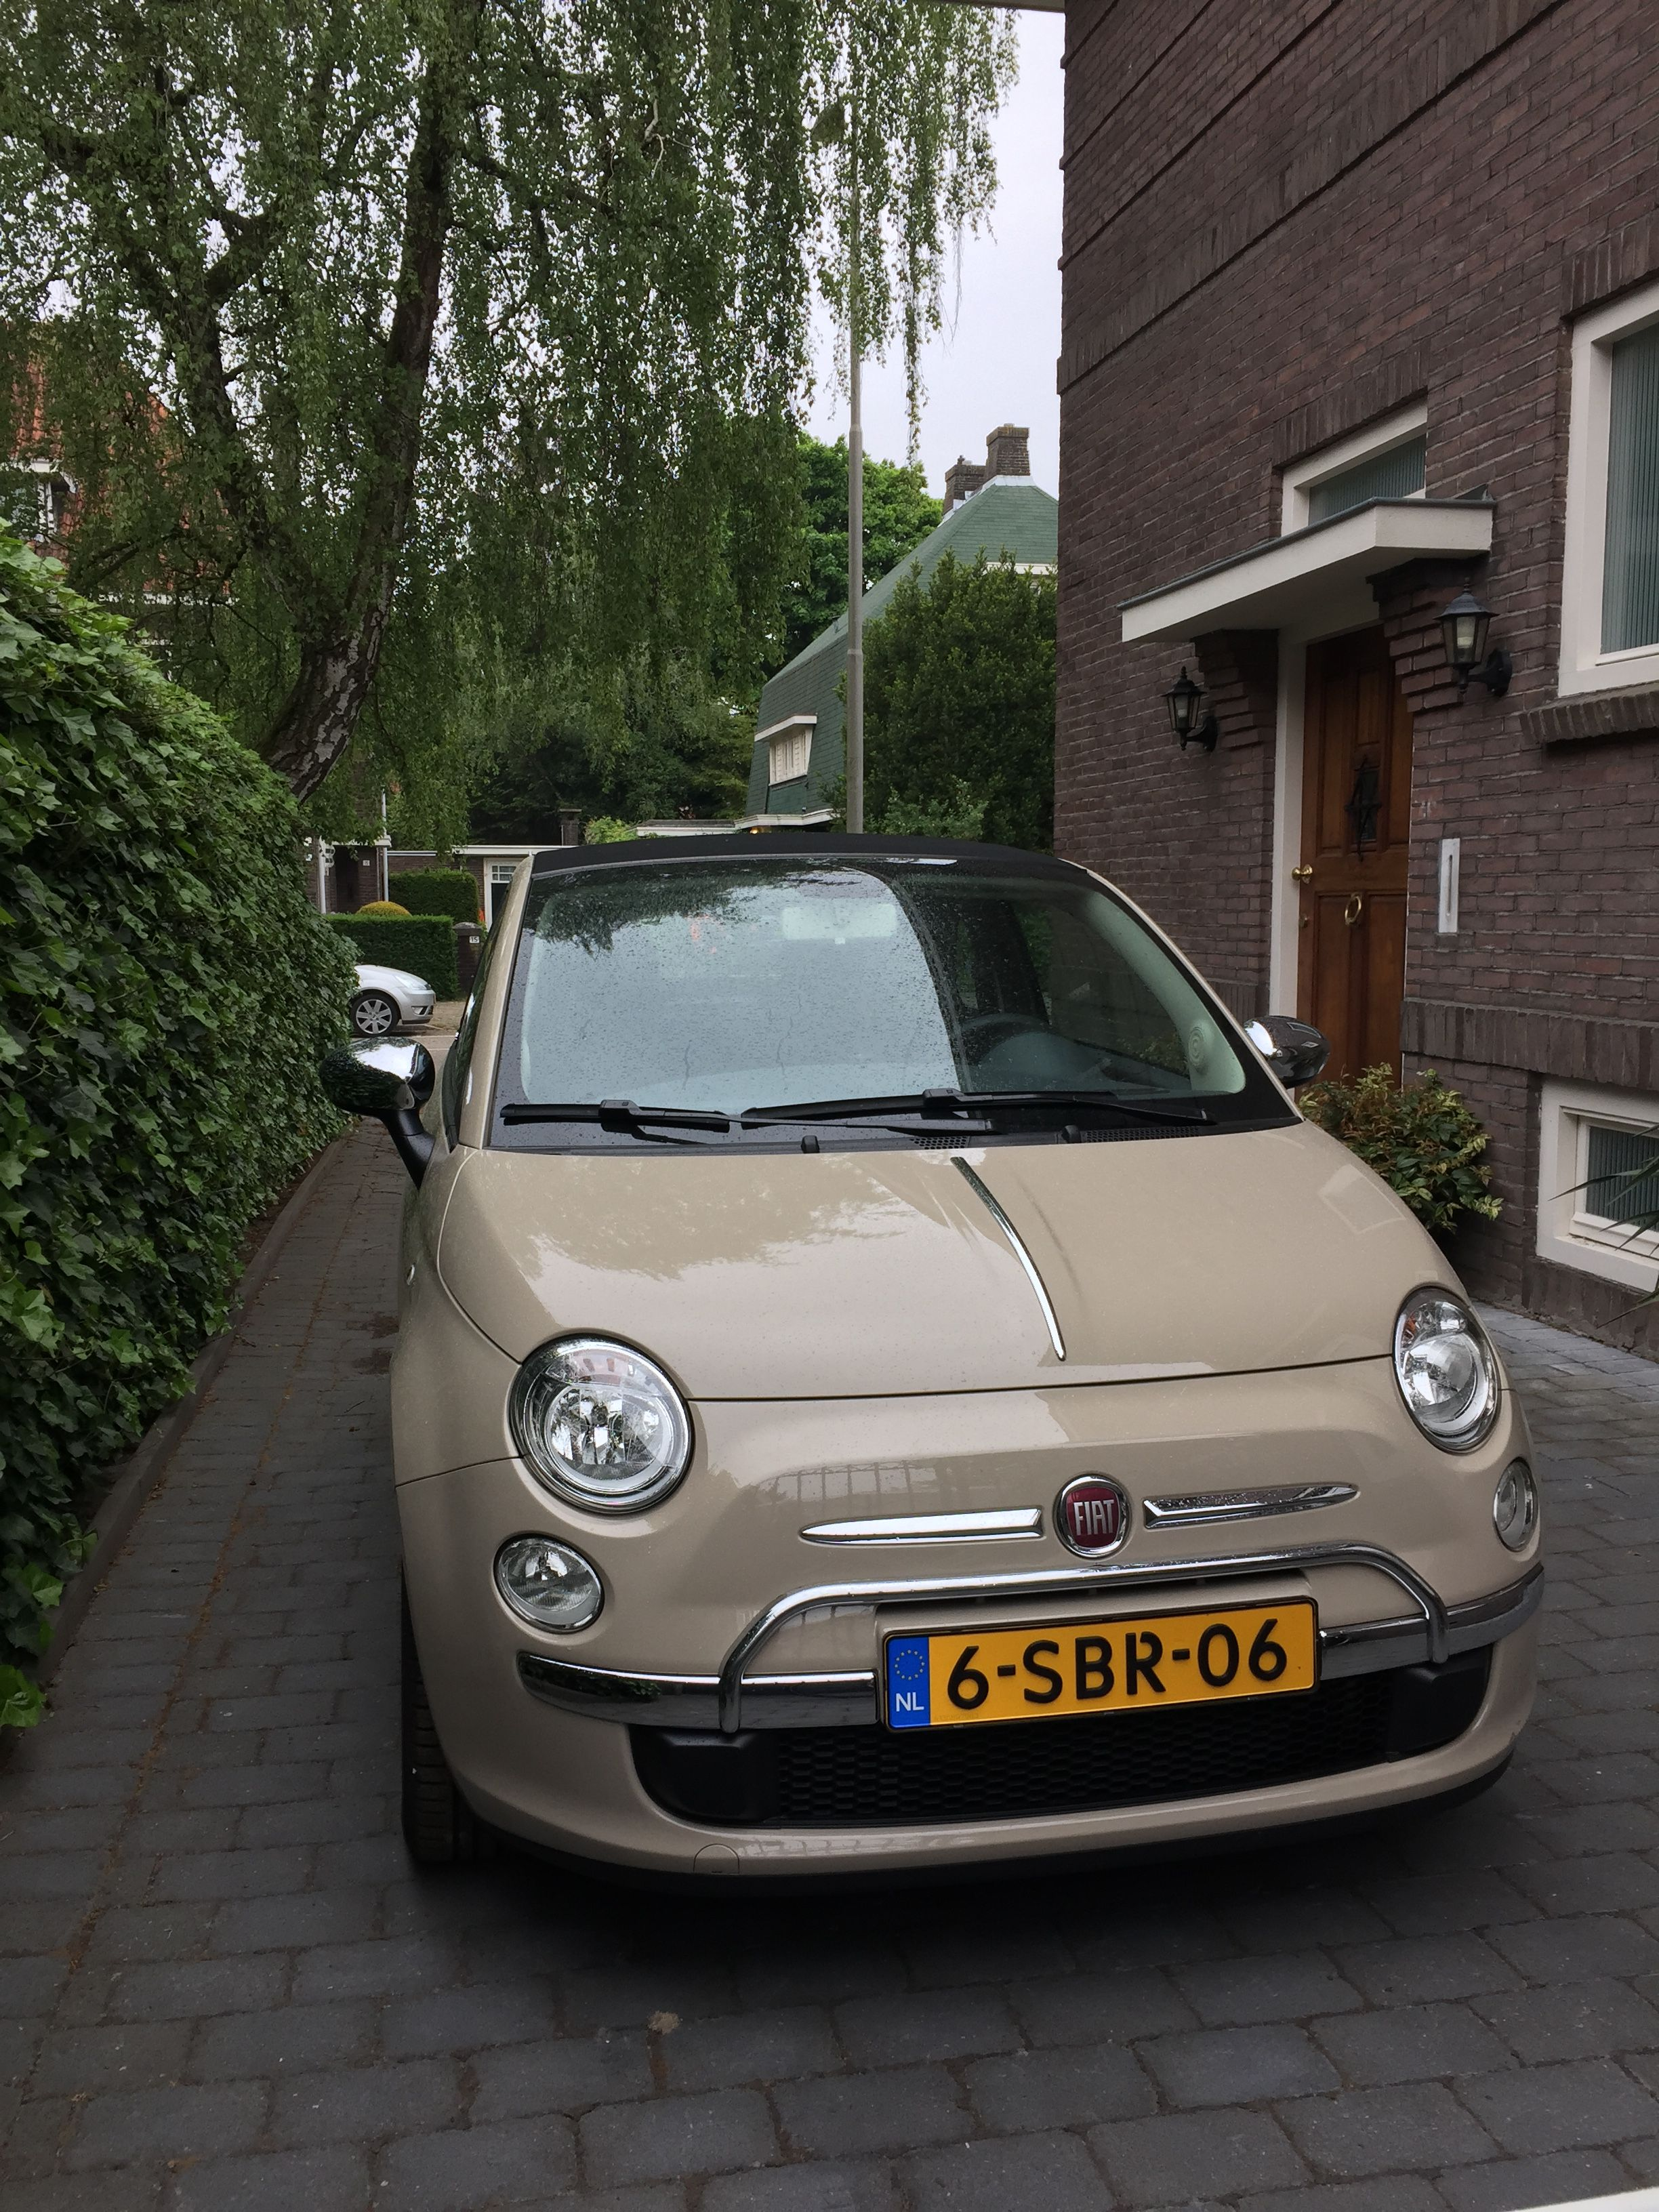 voorbeugel op fiat 500c indie cream beige cappuccino dream pinterest fiat 500c fiat and. Black Bedroom Furniture Sets. Home Design Ideas